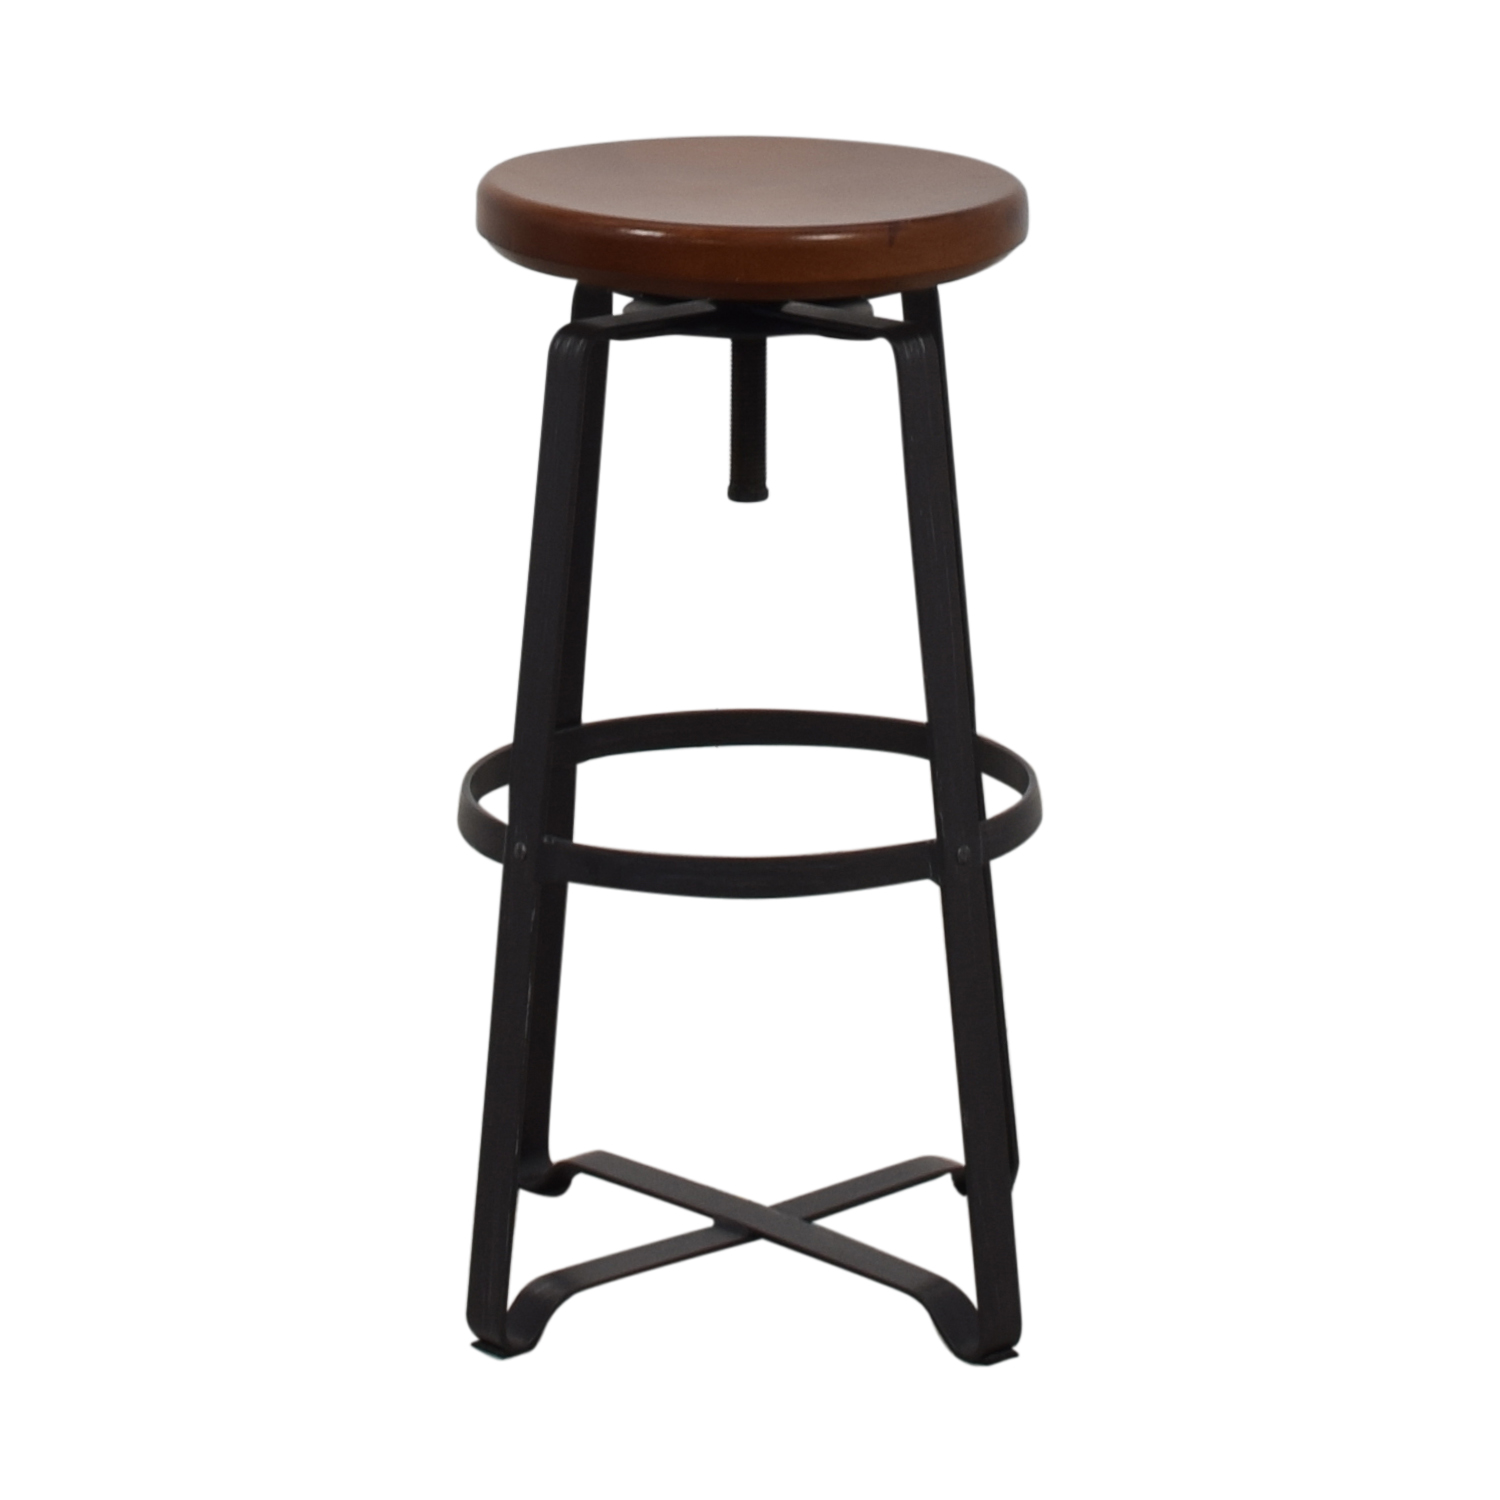 West Elm West Elm Adjustable Industrial Stool on sale